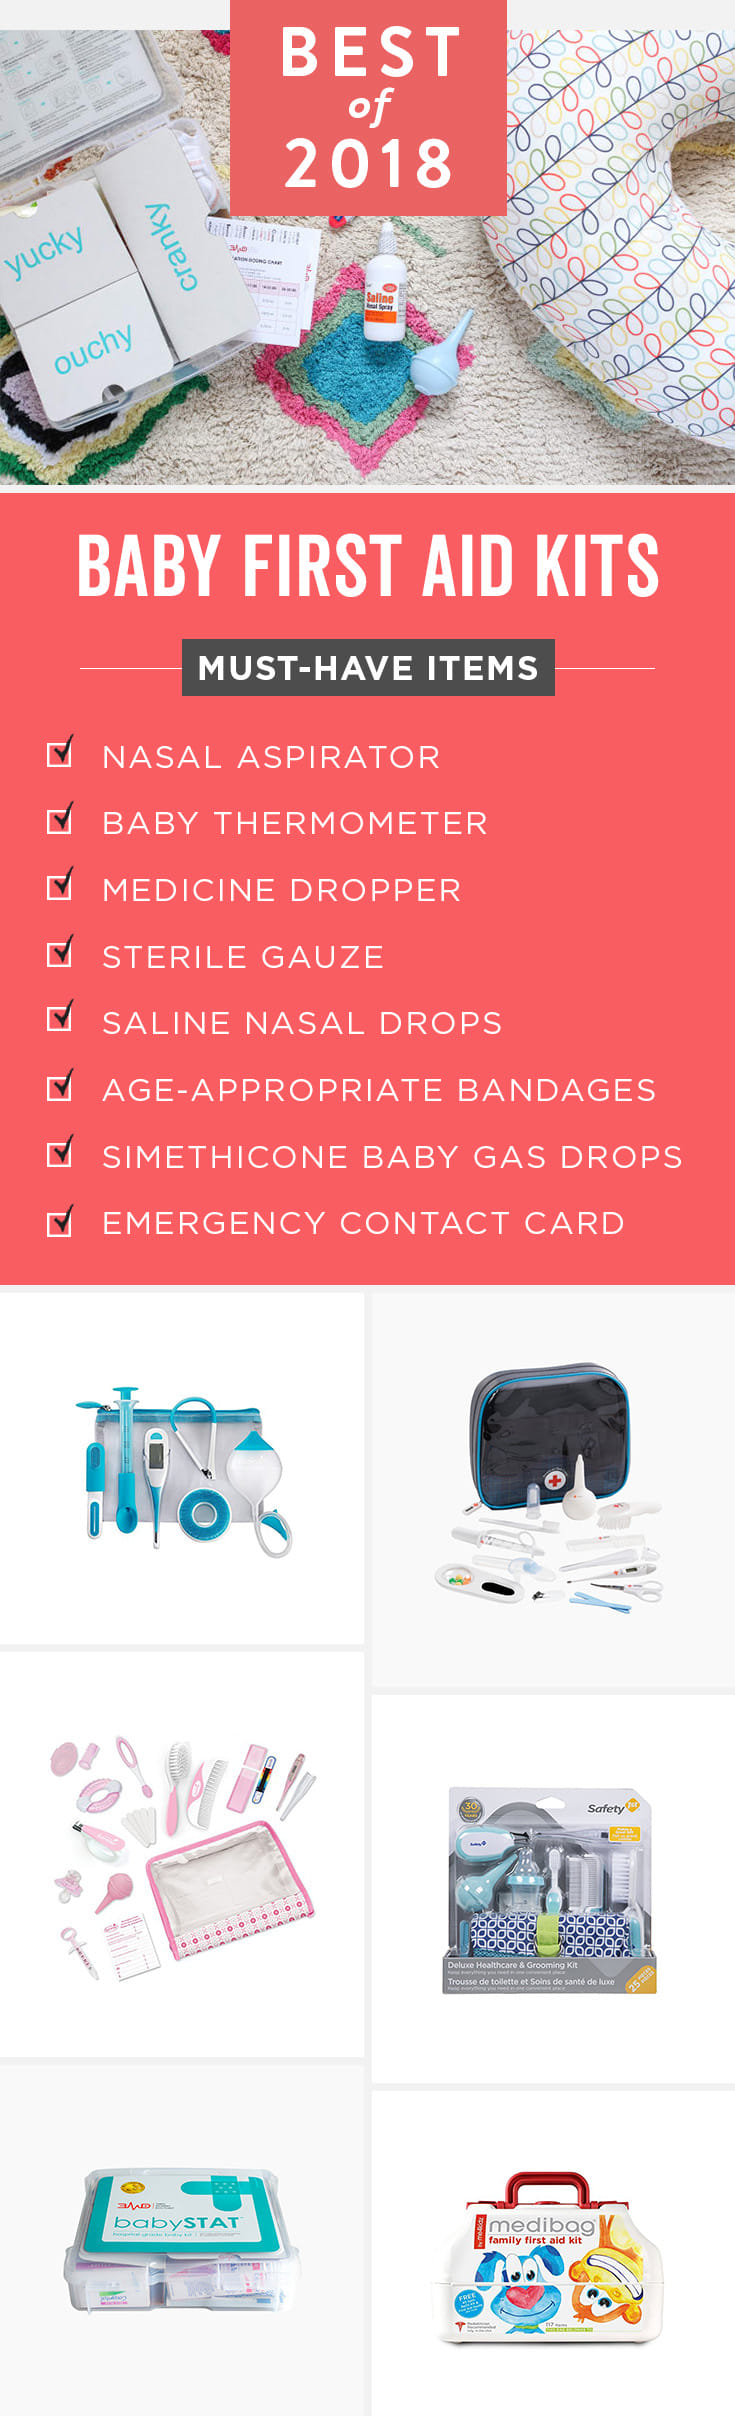 A first aid kit for baby and families should have a few essentials in it. Luckily these all-in-one kits and cases have exactly what you need in case of an emergency, plus they're easy to throw in your car or diaper bag.